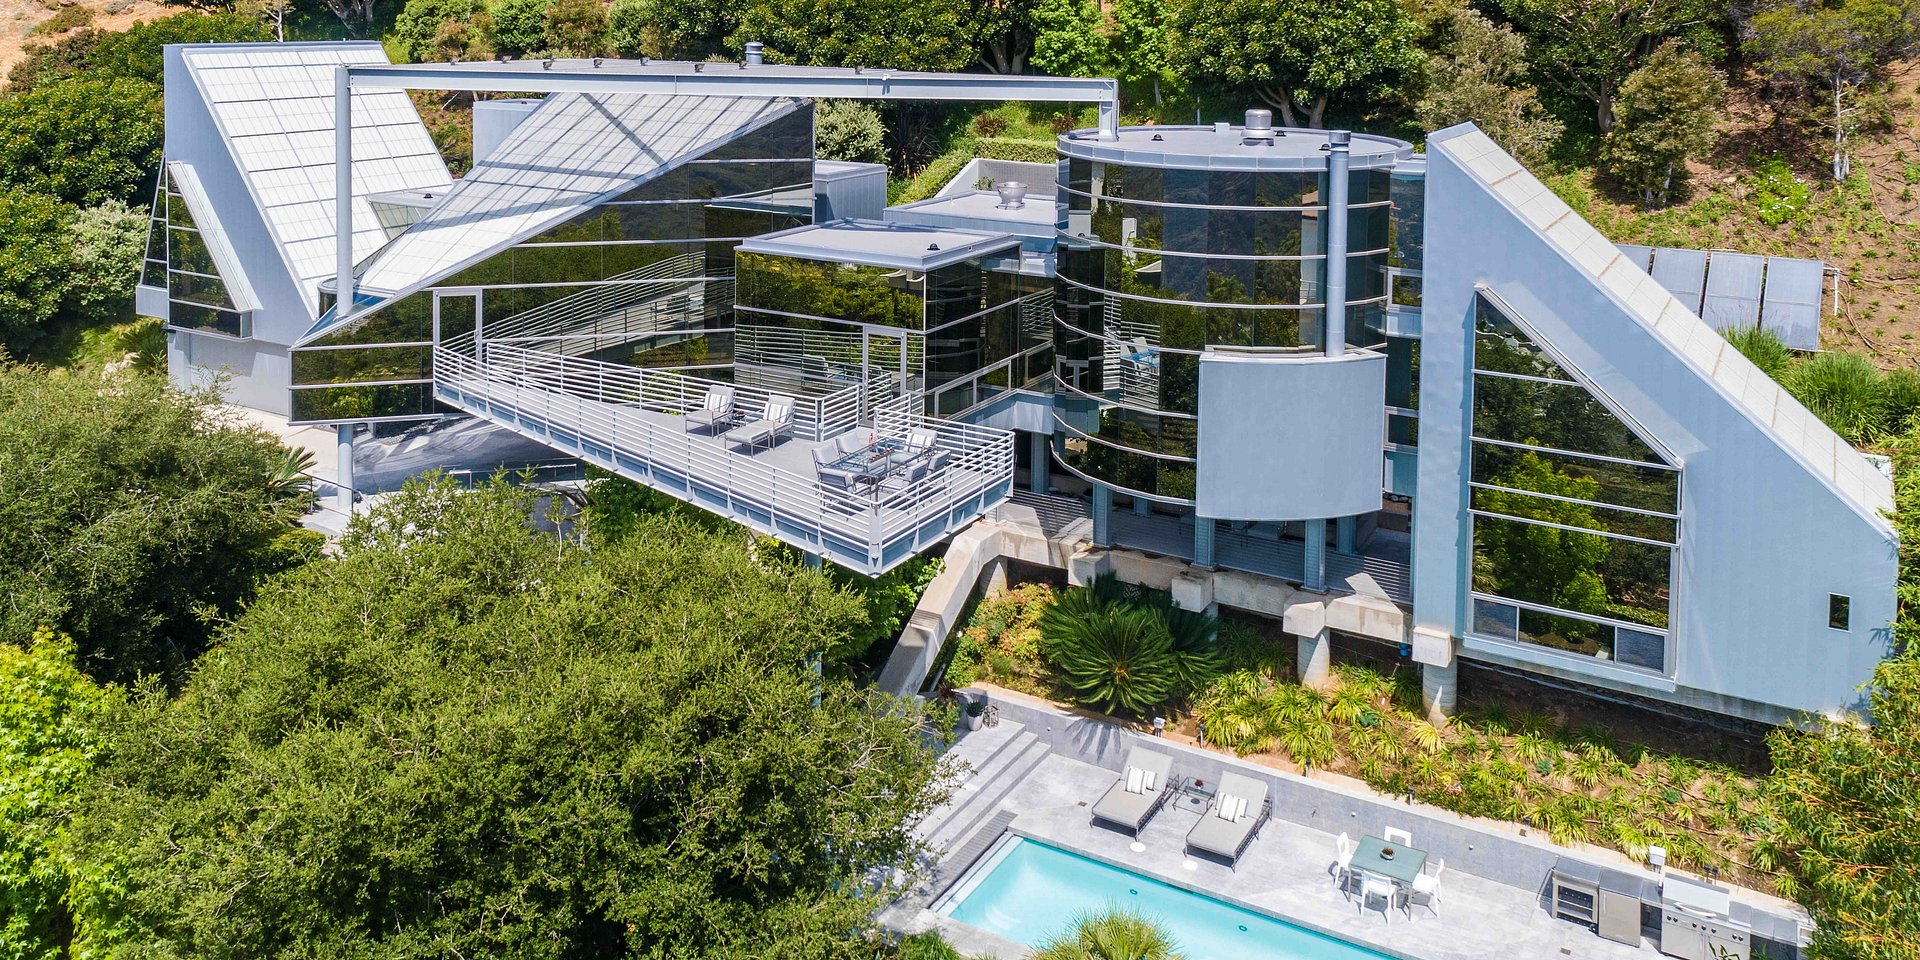 Coldwell Banker Residential Brokerage Sells Malibu Glass House by Edward Niles Architects for $4.2 Million